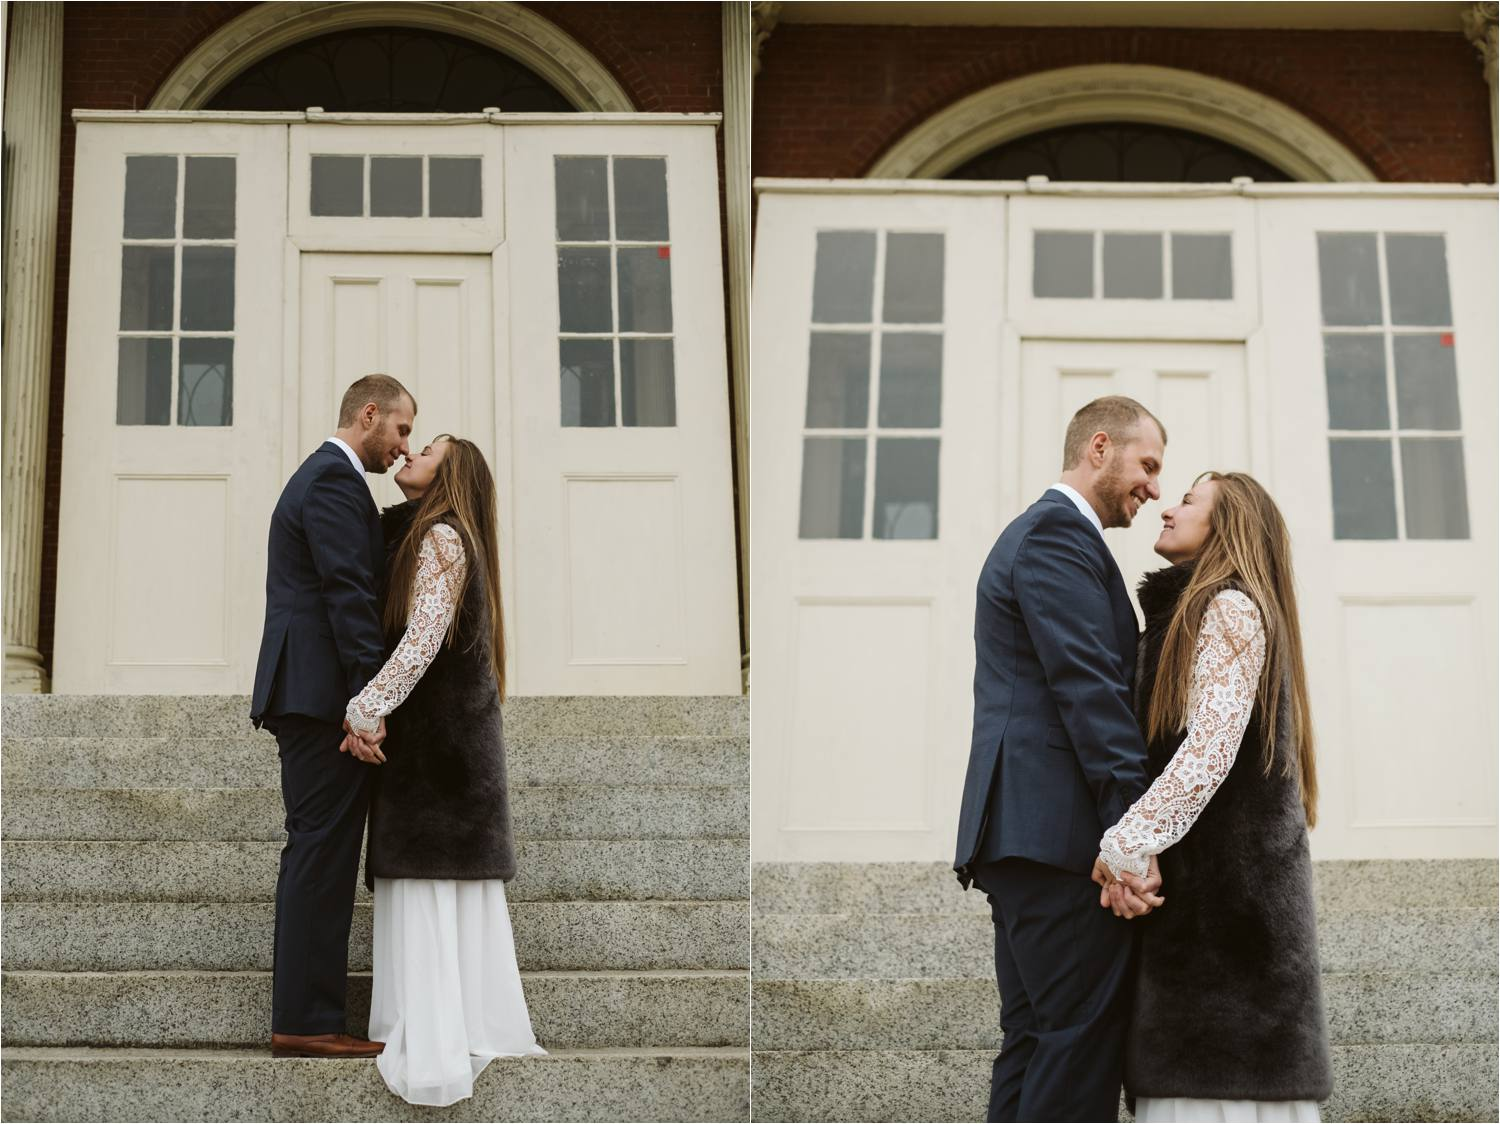 Salem Massachusetts Elopement - Jemima Richards